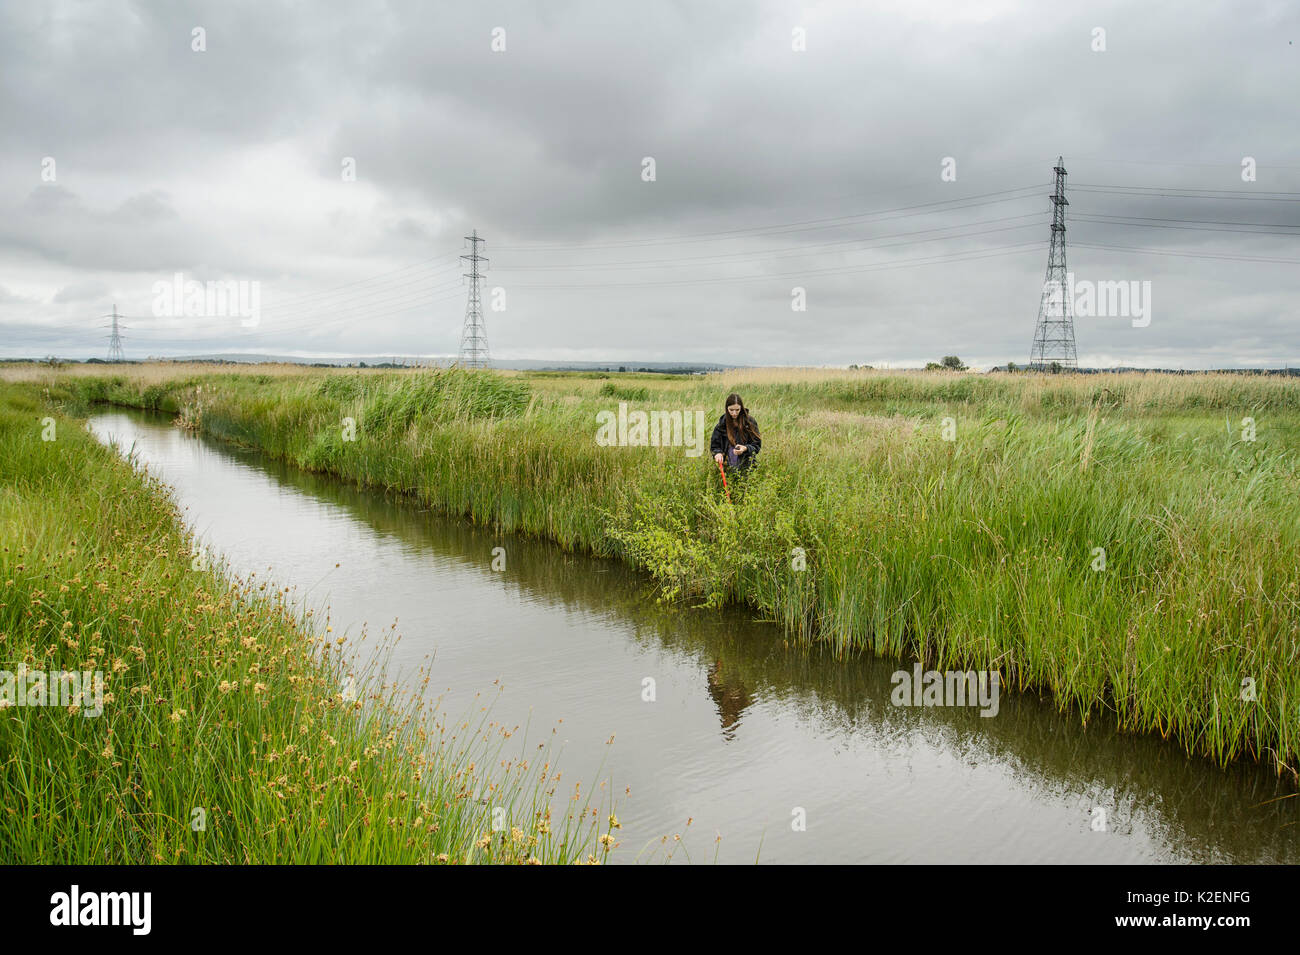 Chloe Sadler of Kent Wildlife Trust 'Water Vole Recovery Project' surveying for signs of Water voles (Arvicola amphibius). North Kent Marshes, UK, June. - Stock Image